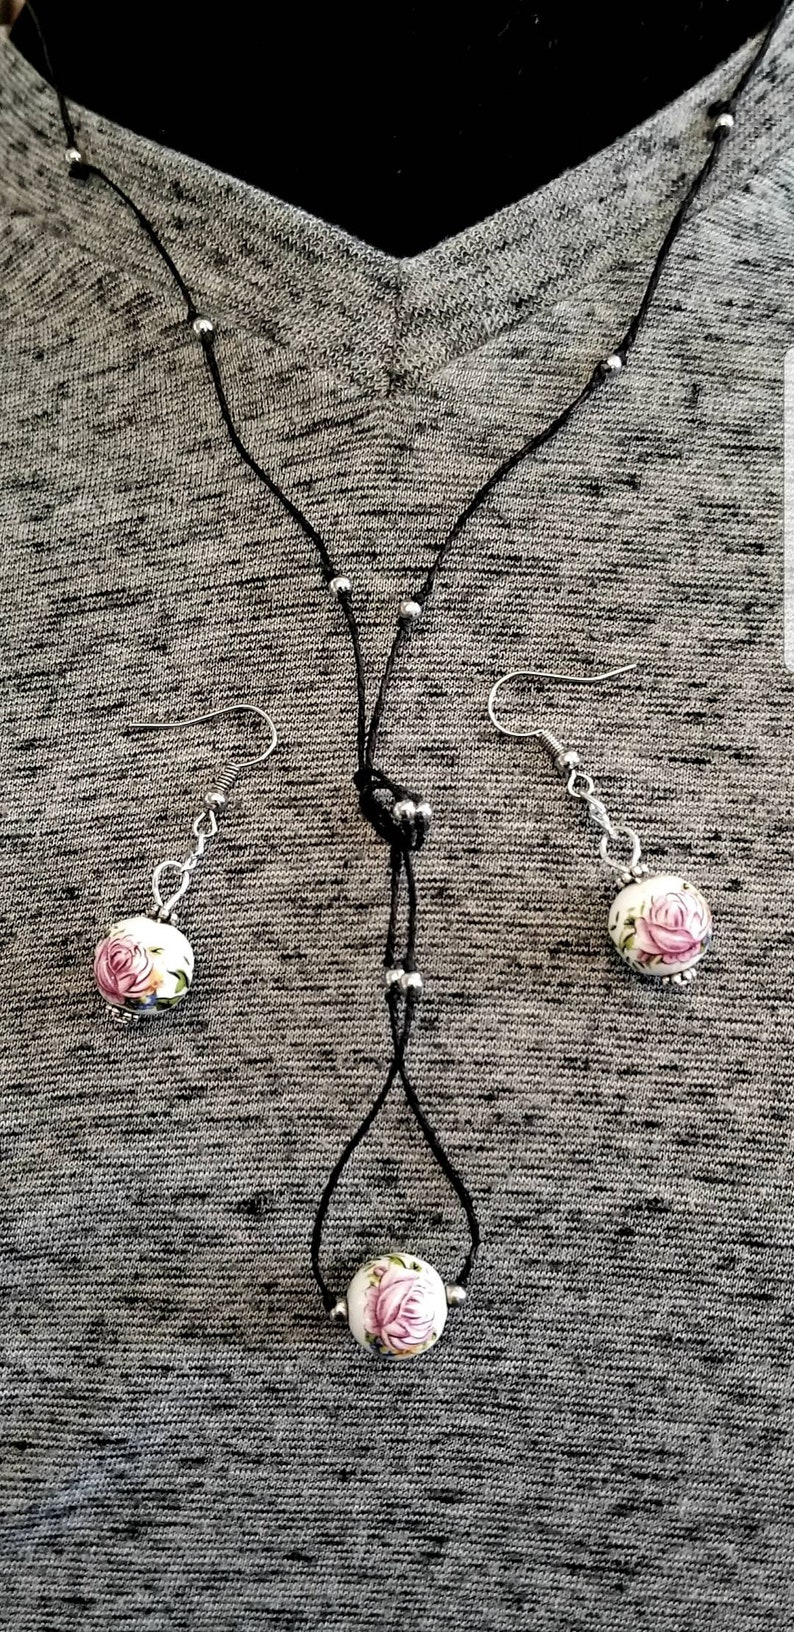 Ceramic Rose and Beads MinimalistBoho Necklace on a Hemp Cord with Matching Earrings